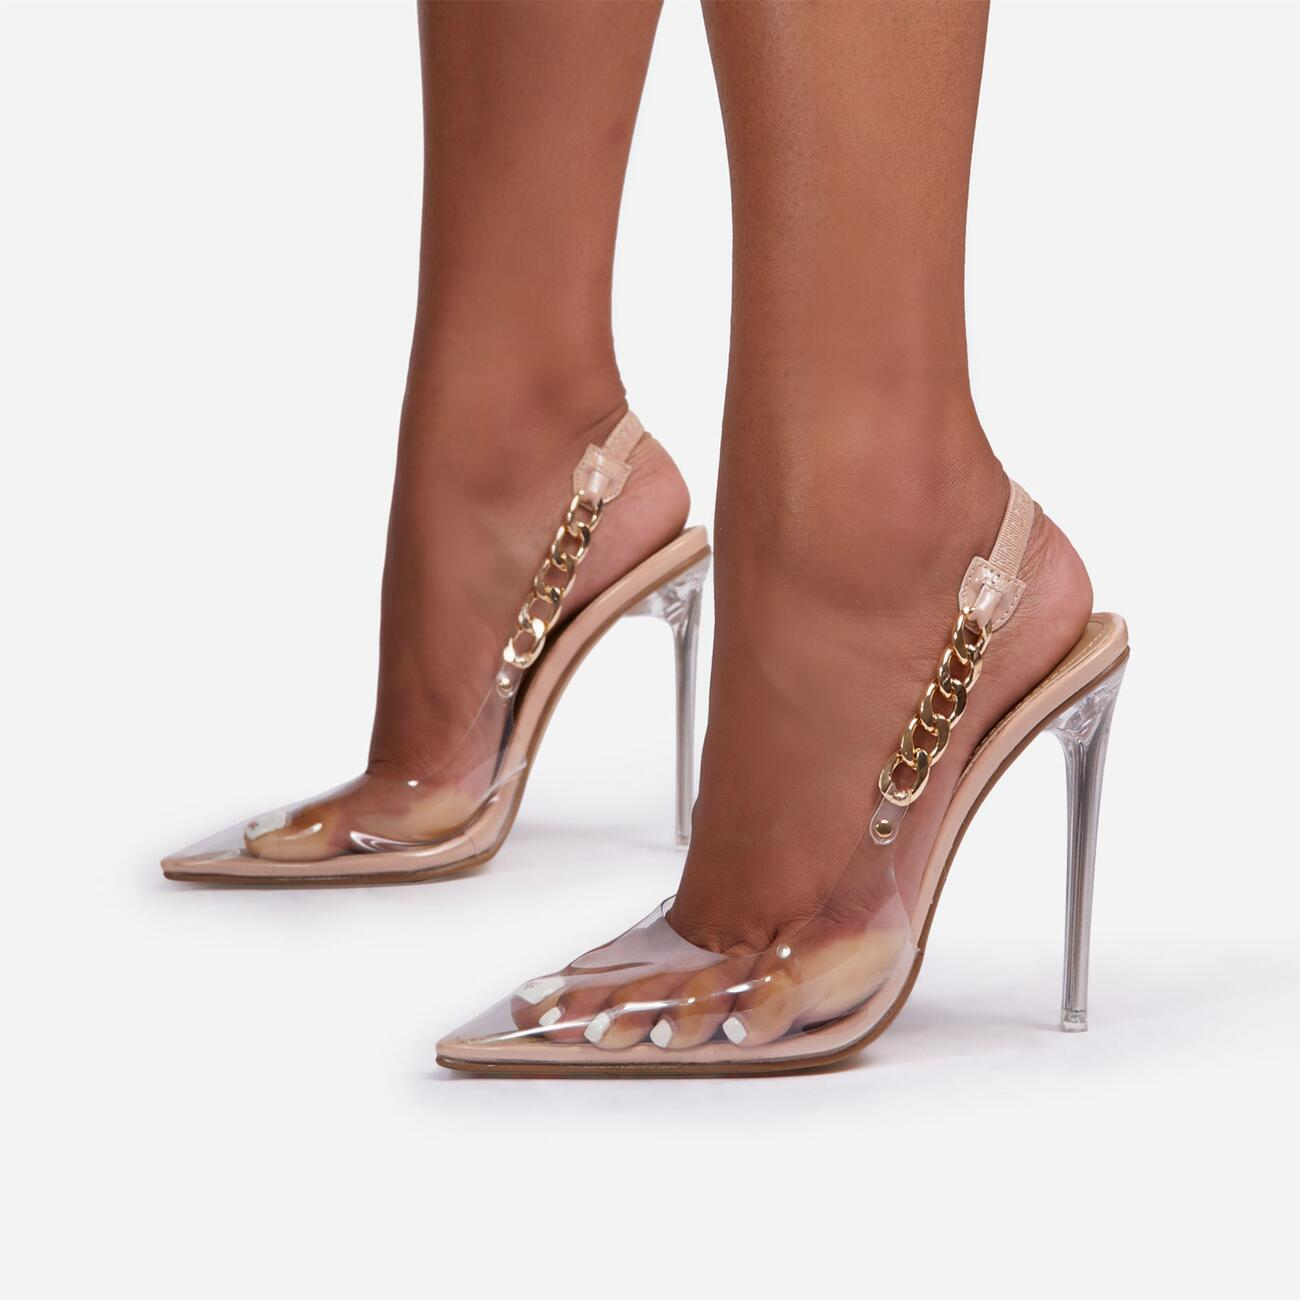 Martini Chunky Chain Detail Sling Back Clear Perspex Heel In Nude Faux Leather Image 1